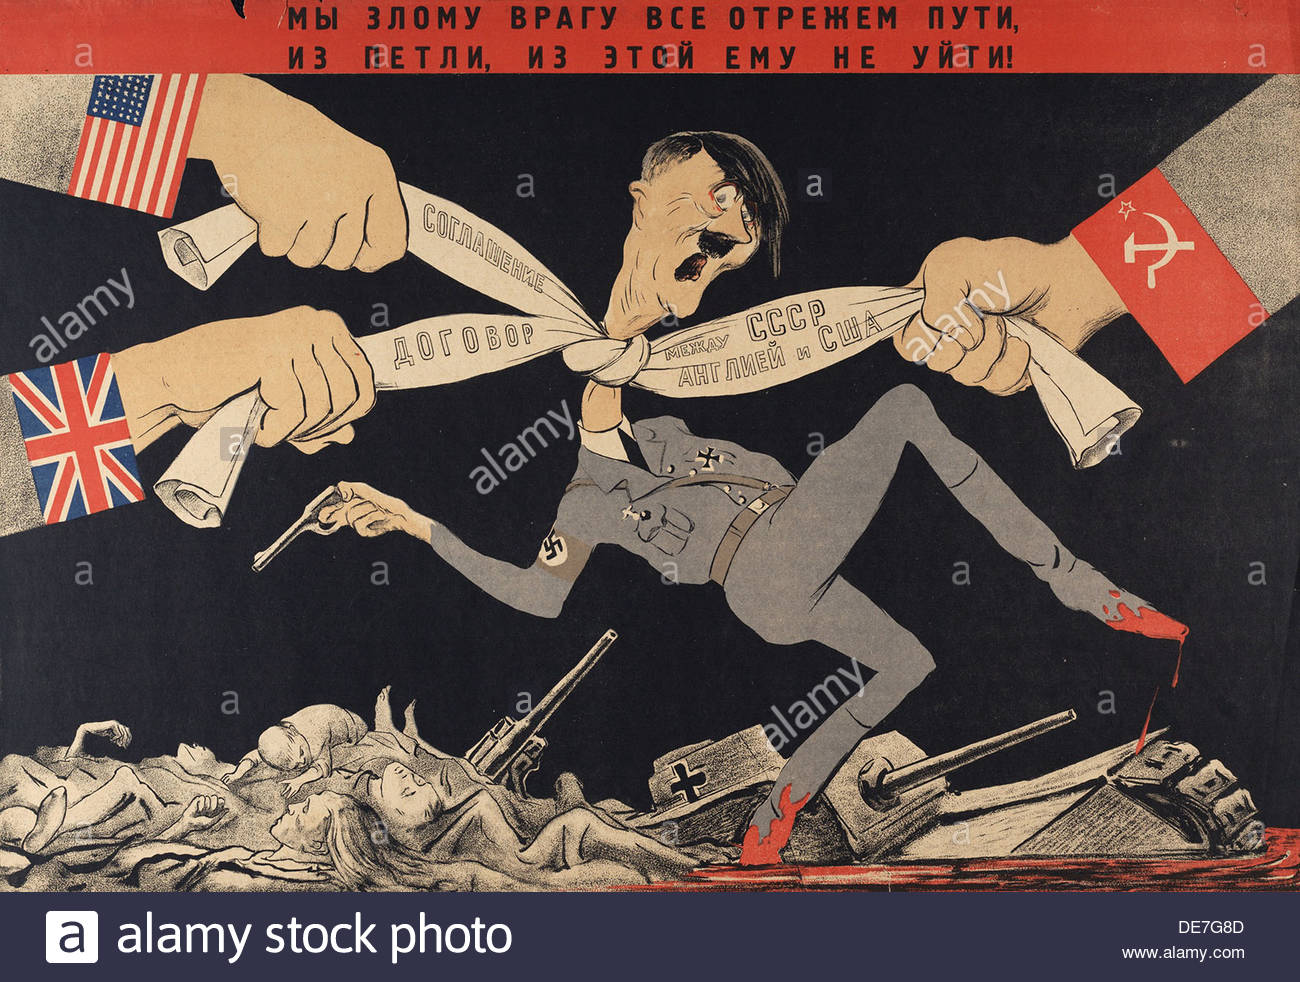 Treaty of solidarity between the Soviet Union, England, and the United States, 1942. Artist: Kukryniksy (Art Group) (20th centur - Stock Image